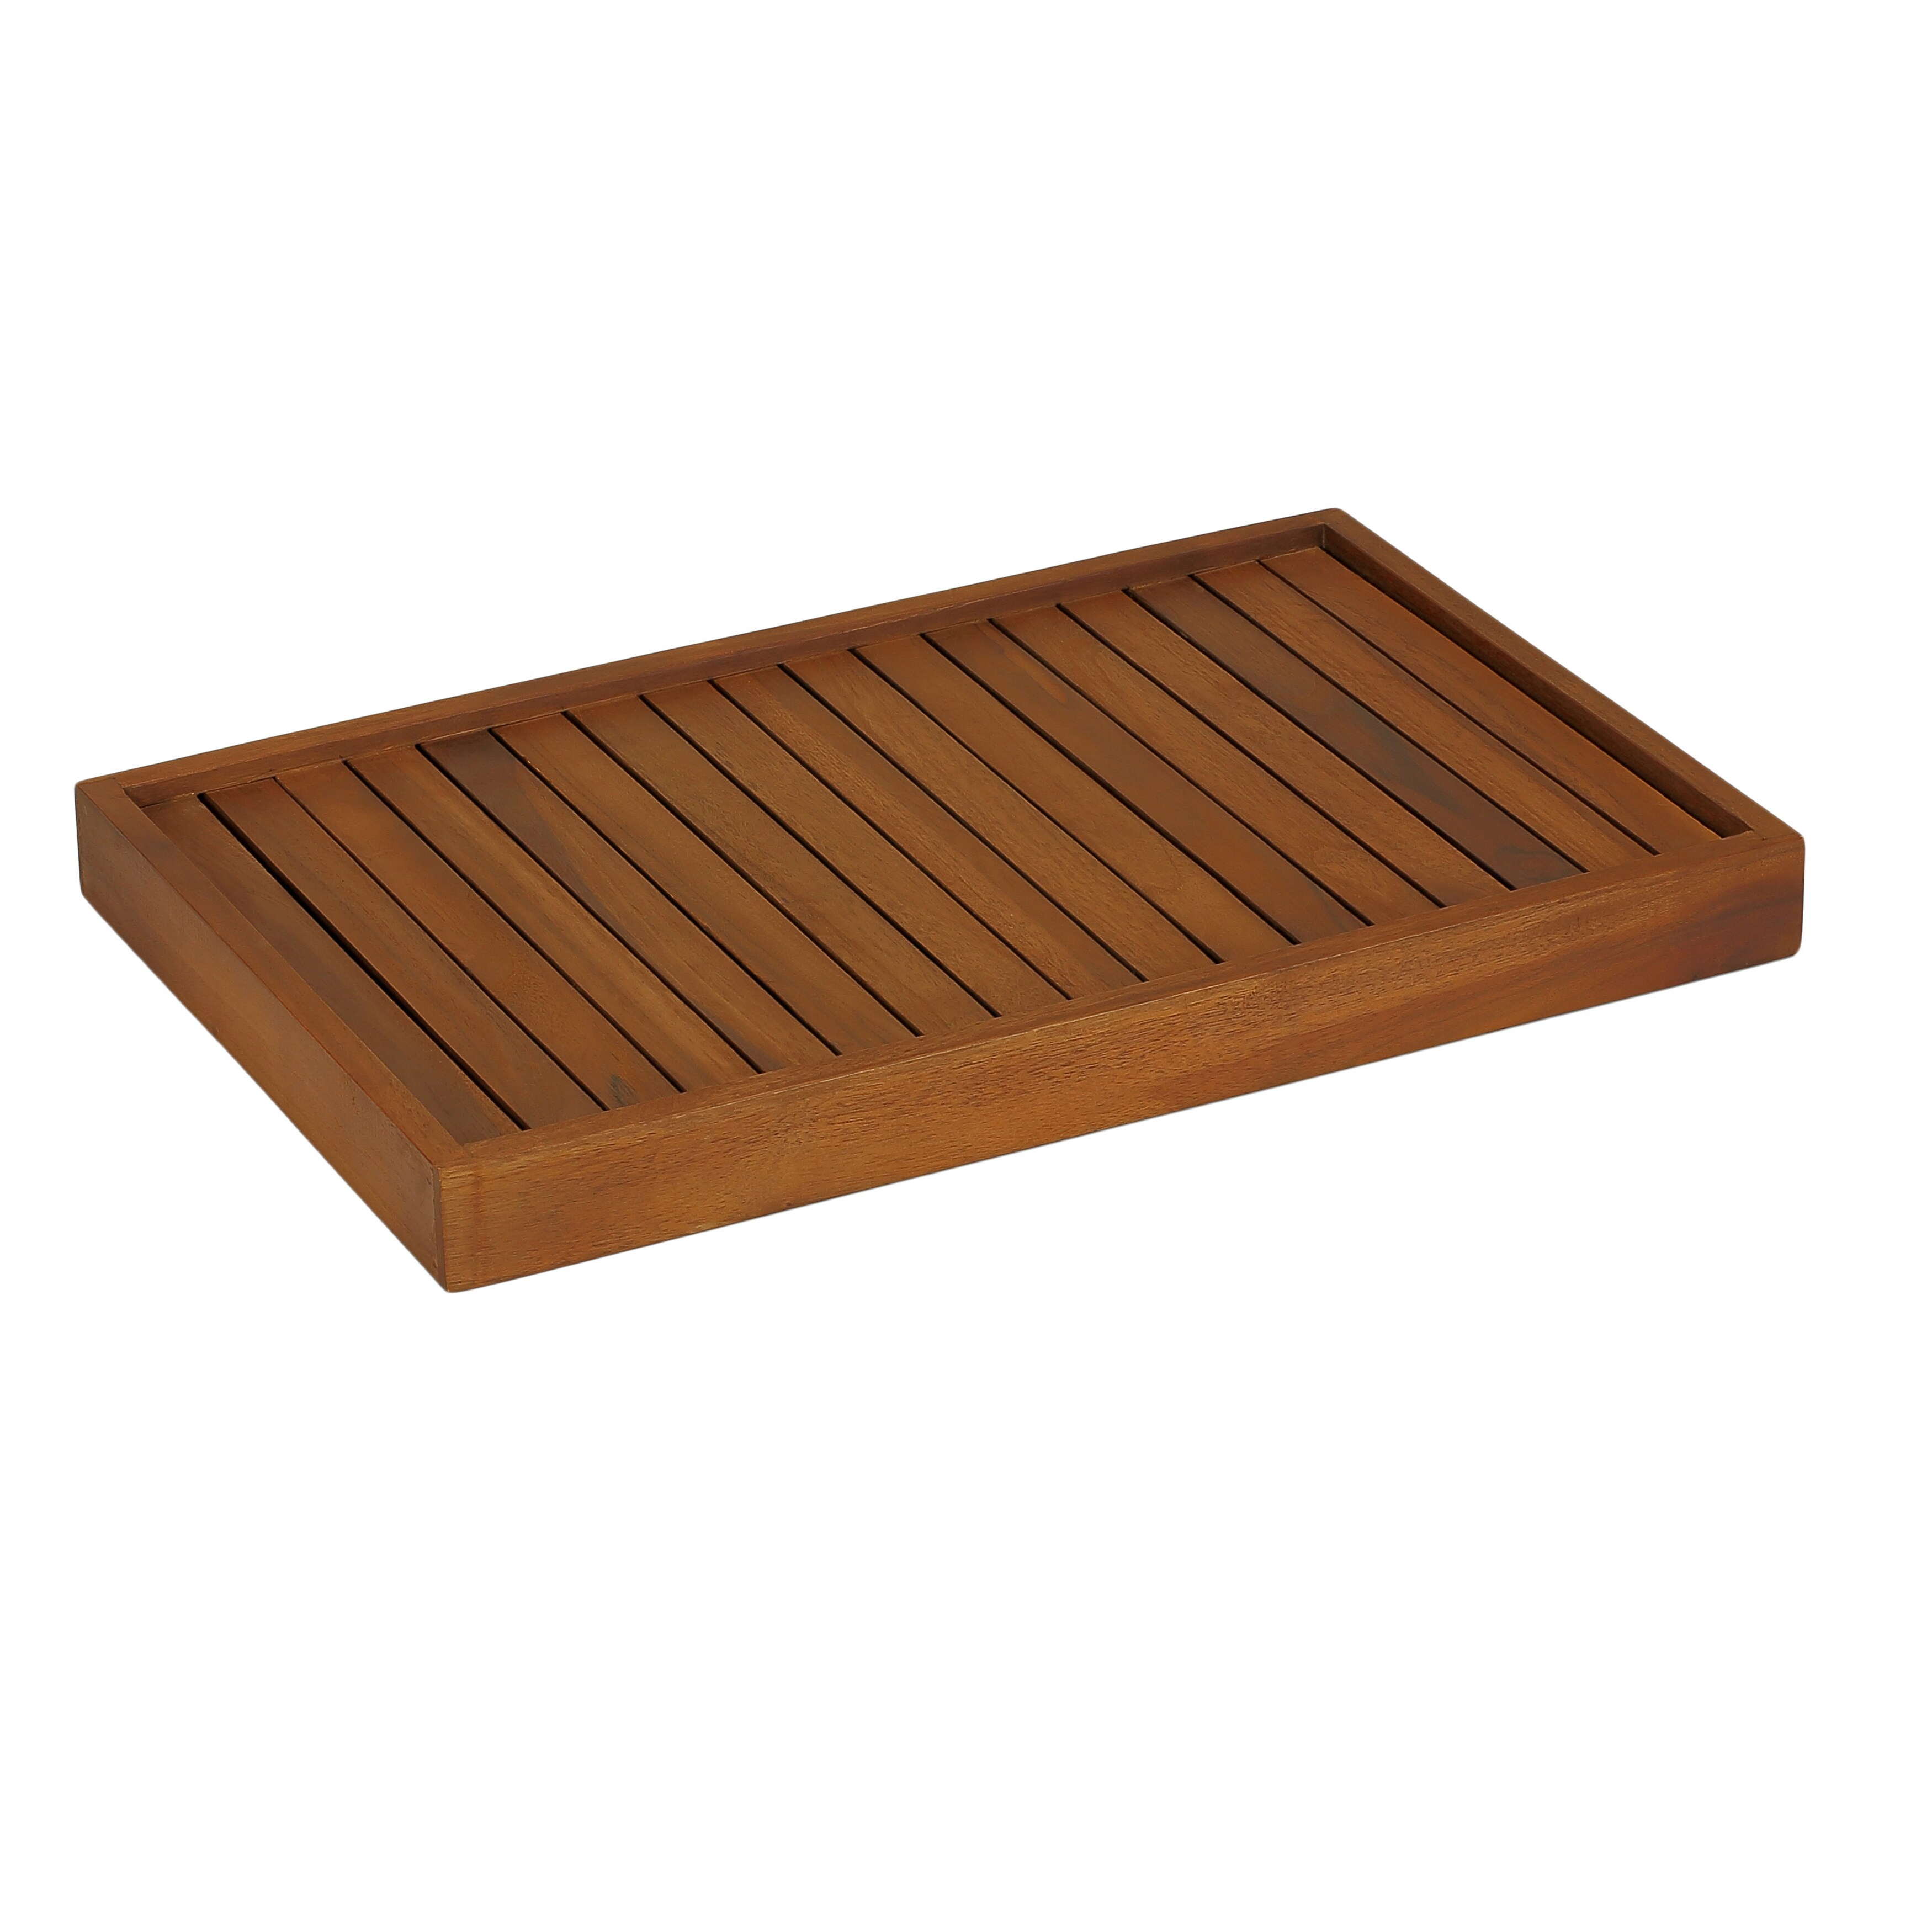 Bare Decor Coco Breakfast In Bed Solid Teak Wood Serving Tray Table/Laptop  Stand   Free Shipping Today   Overstock.com   18791556